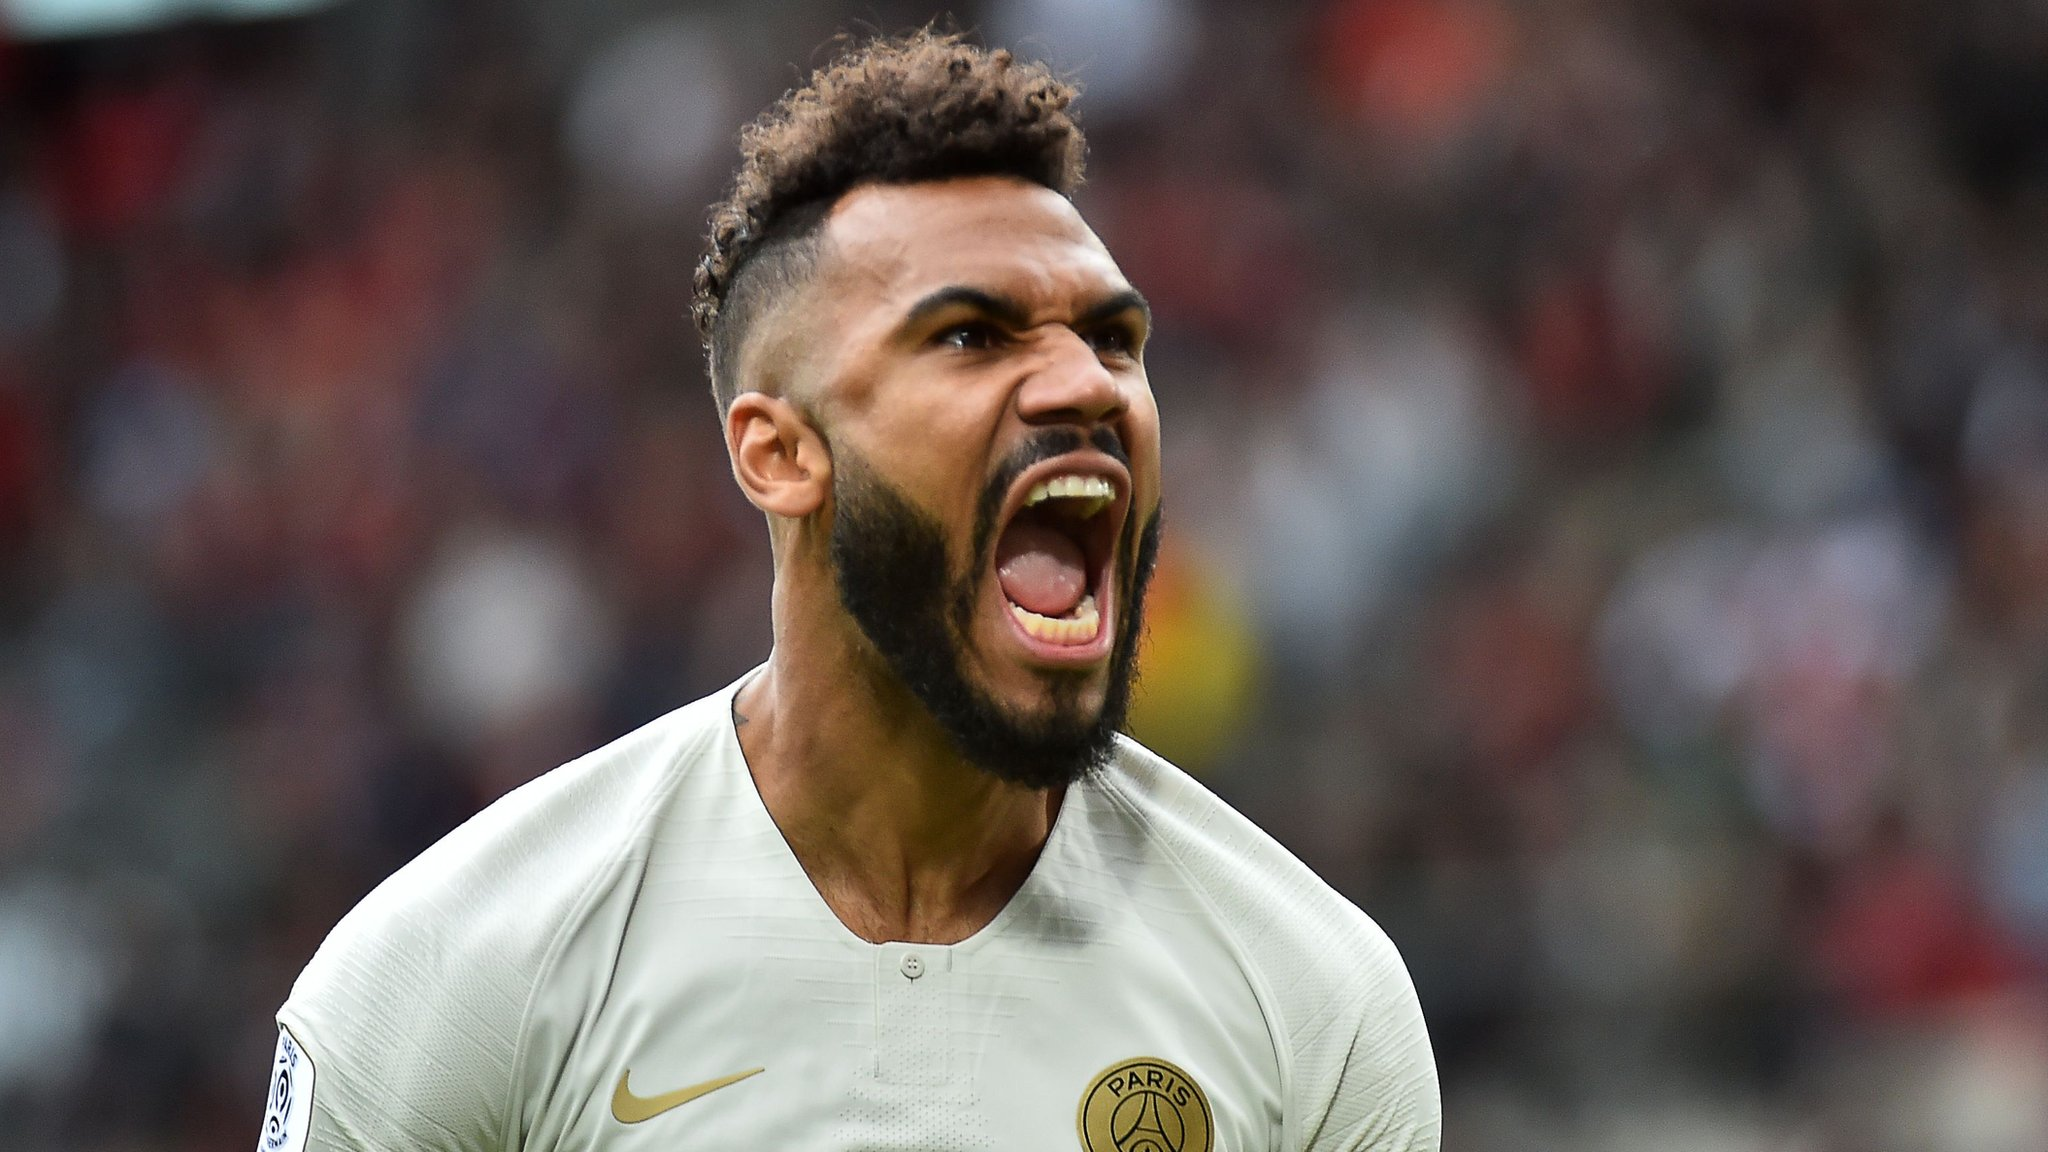 Choupo-Moting follows appearance at Liverpool with first PSG goal